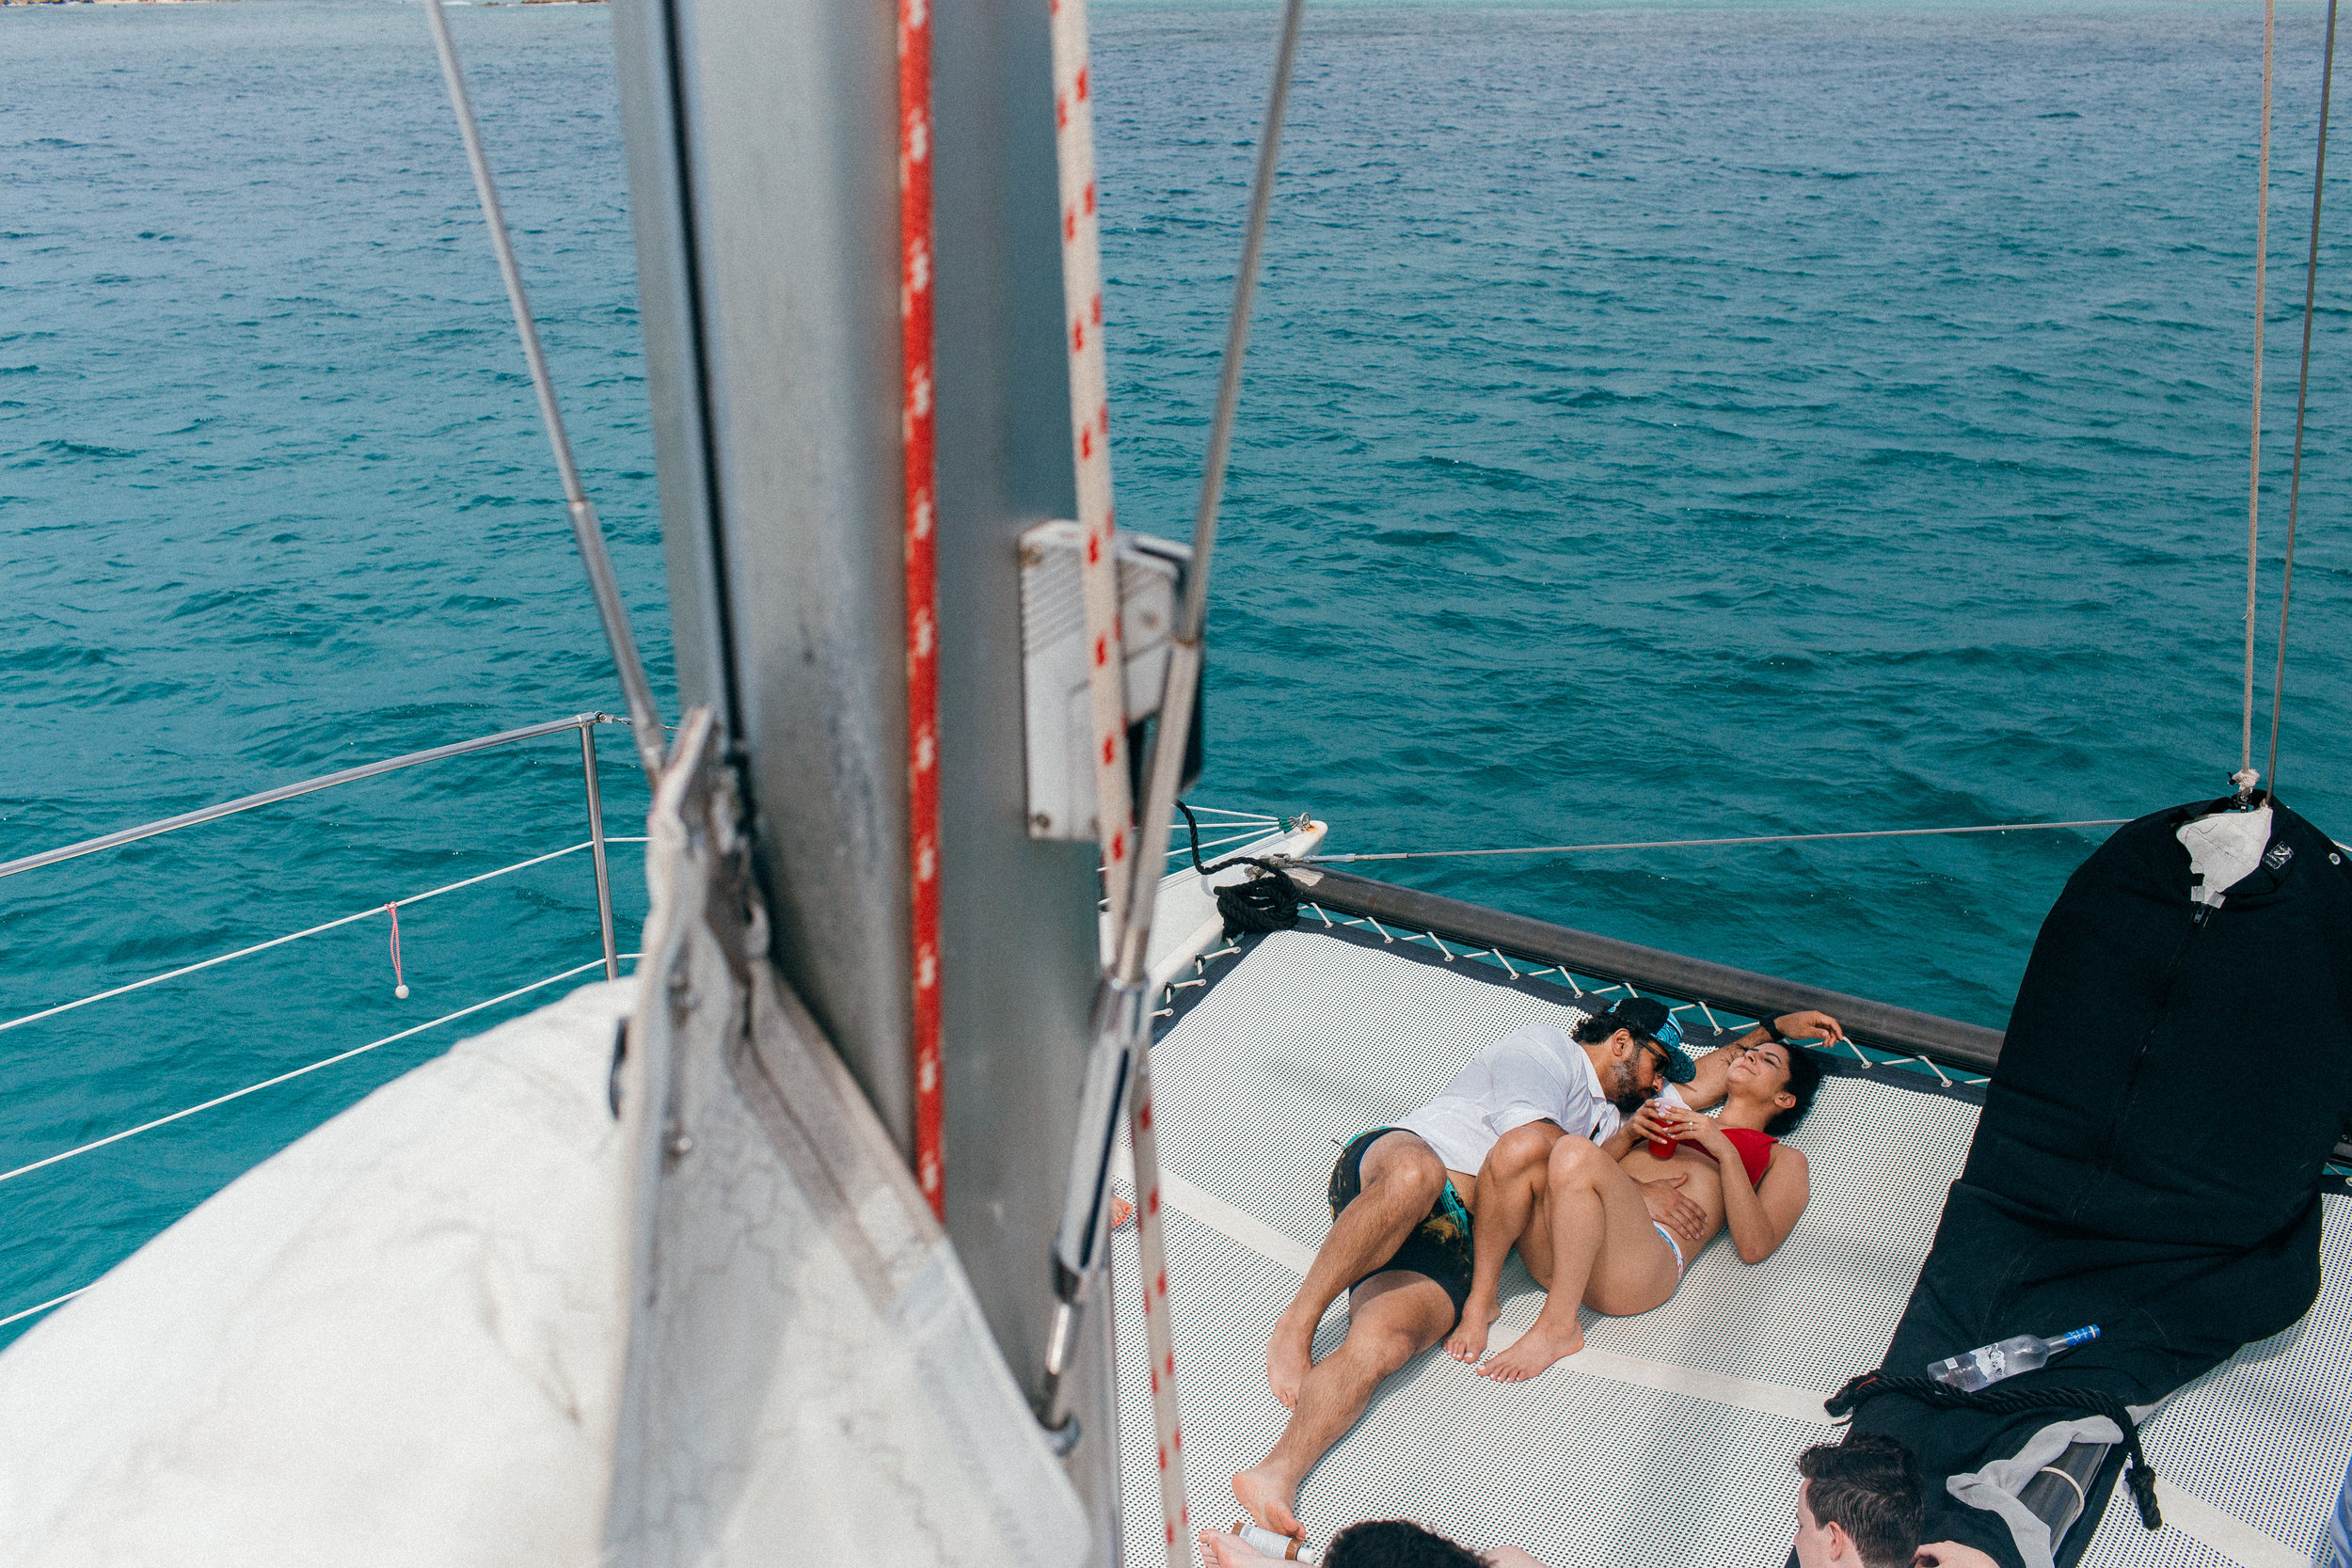 Victoria & Carlos on their rehearsal day with friends on a North Shore catamaran ride in Oahu, Hawaii